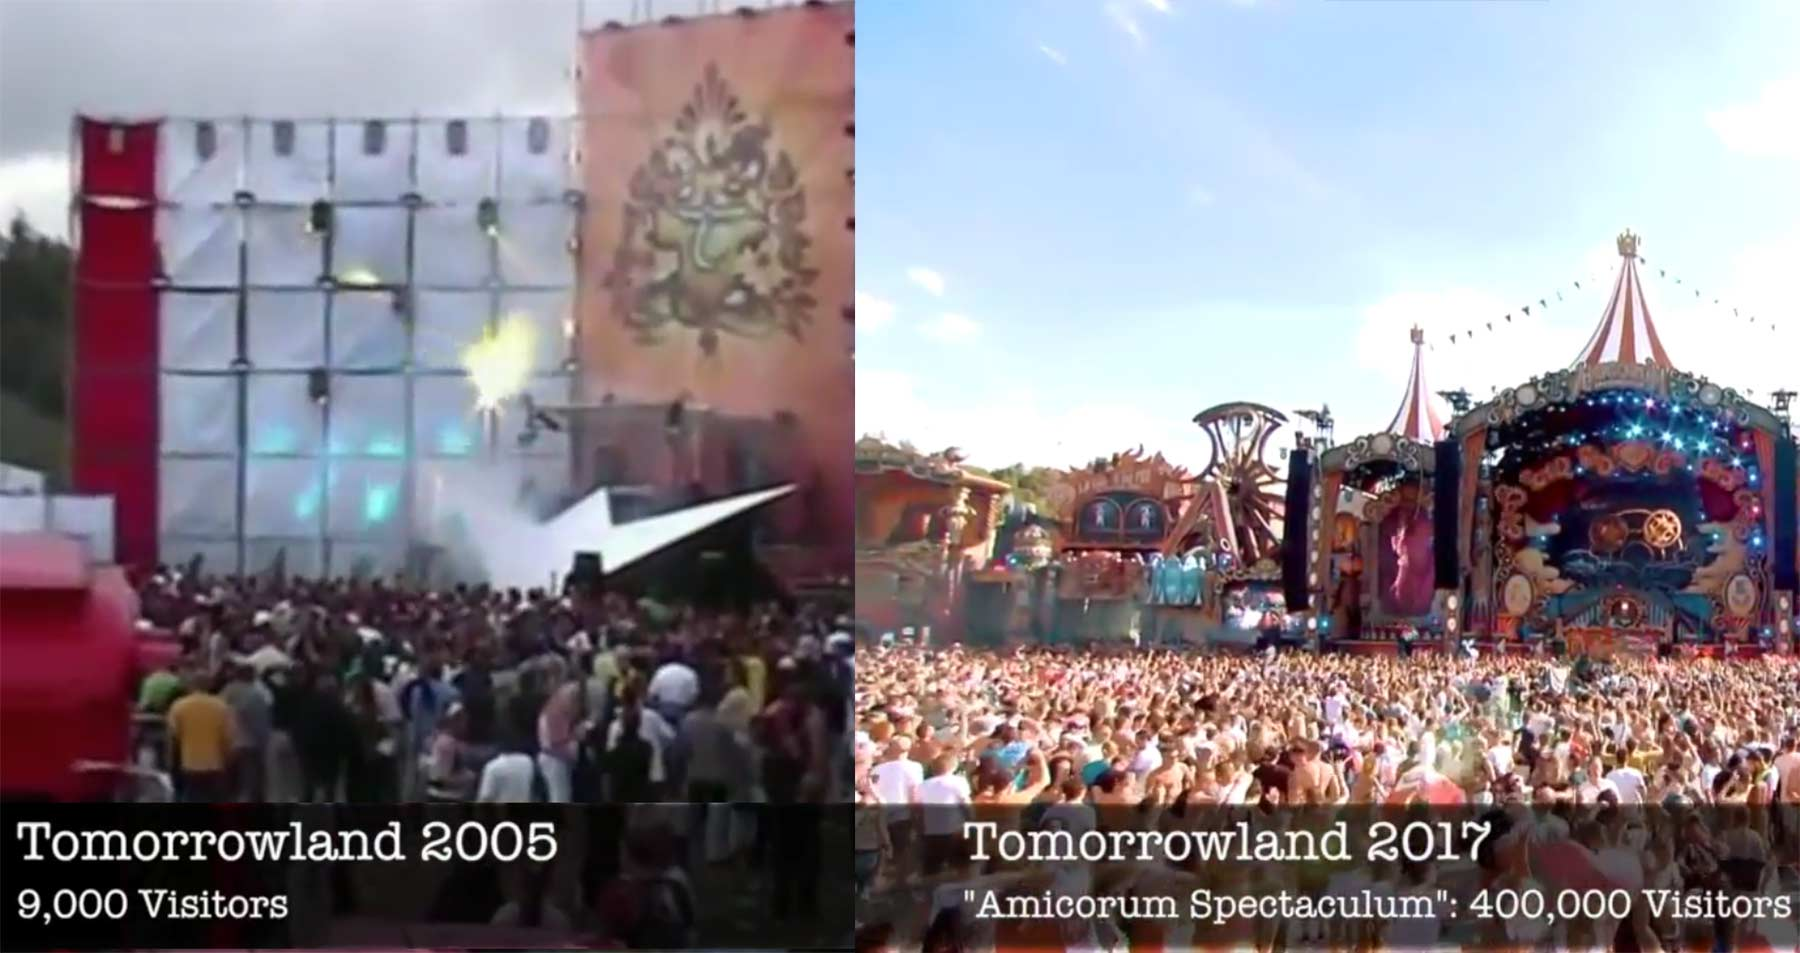 Die Evolution der Main Stage des Tomorrowland Festivals